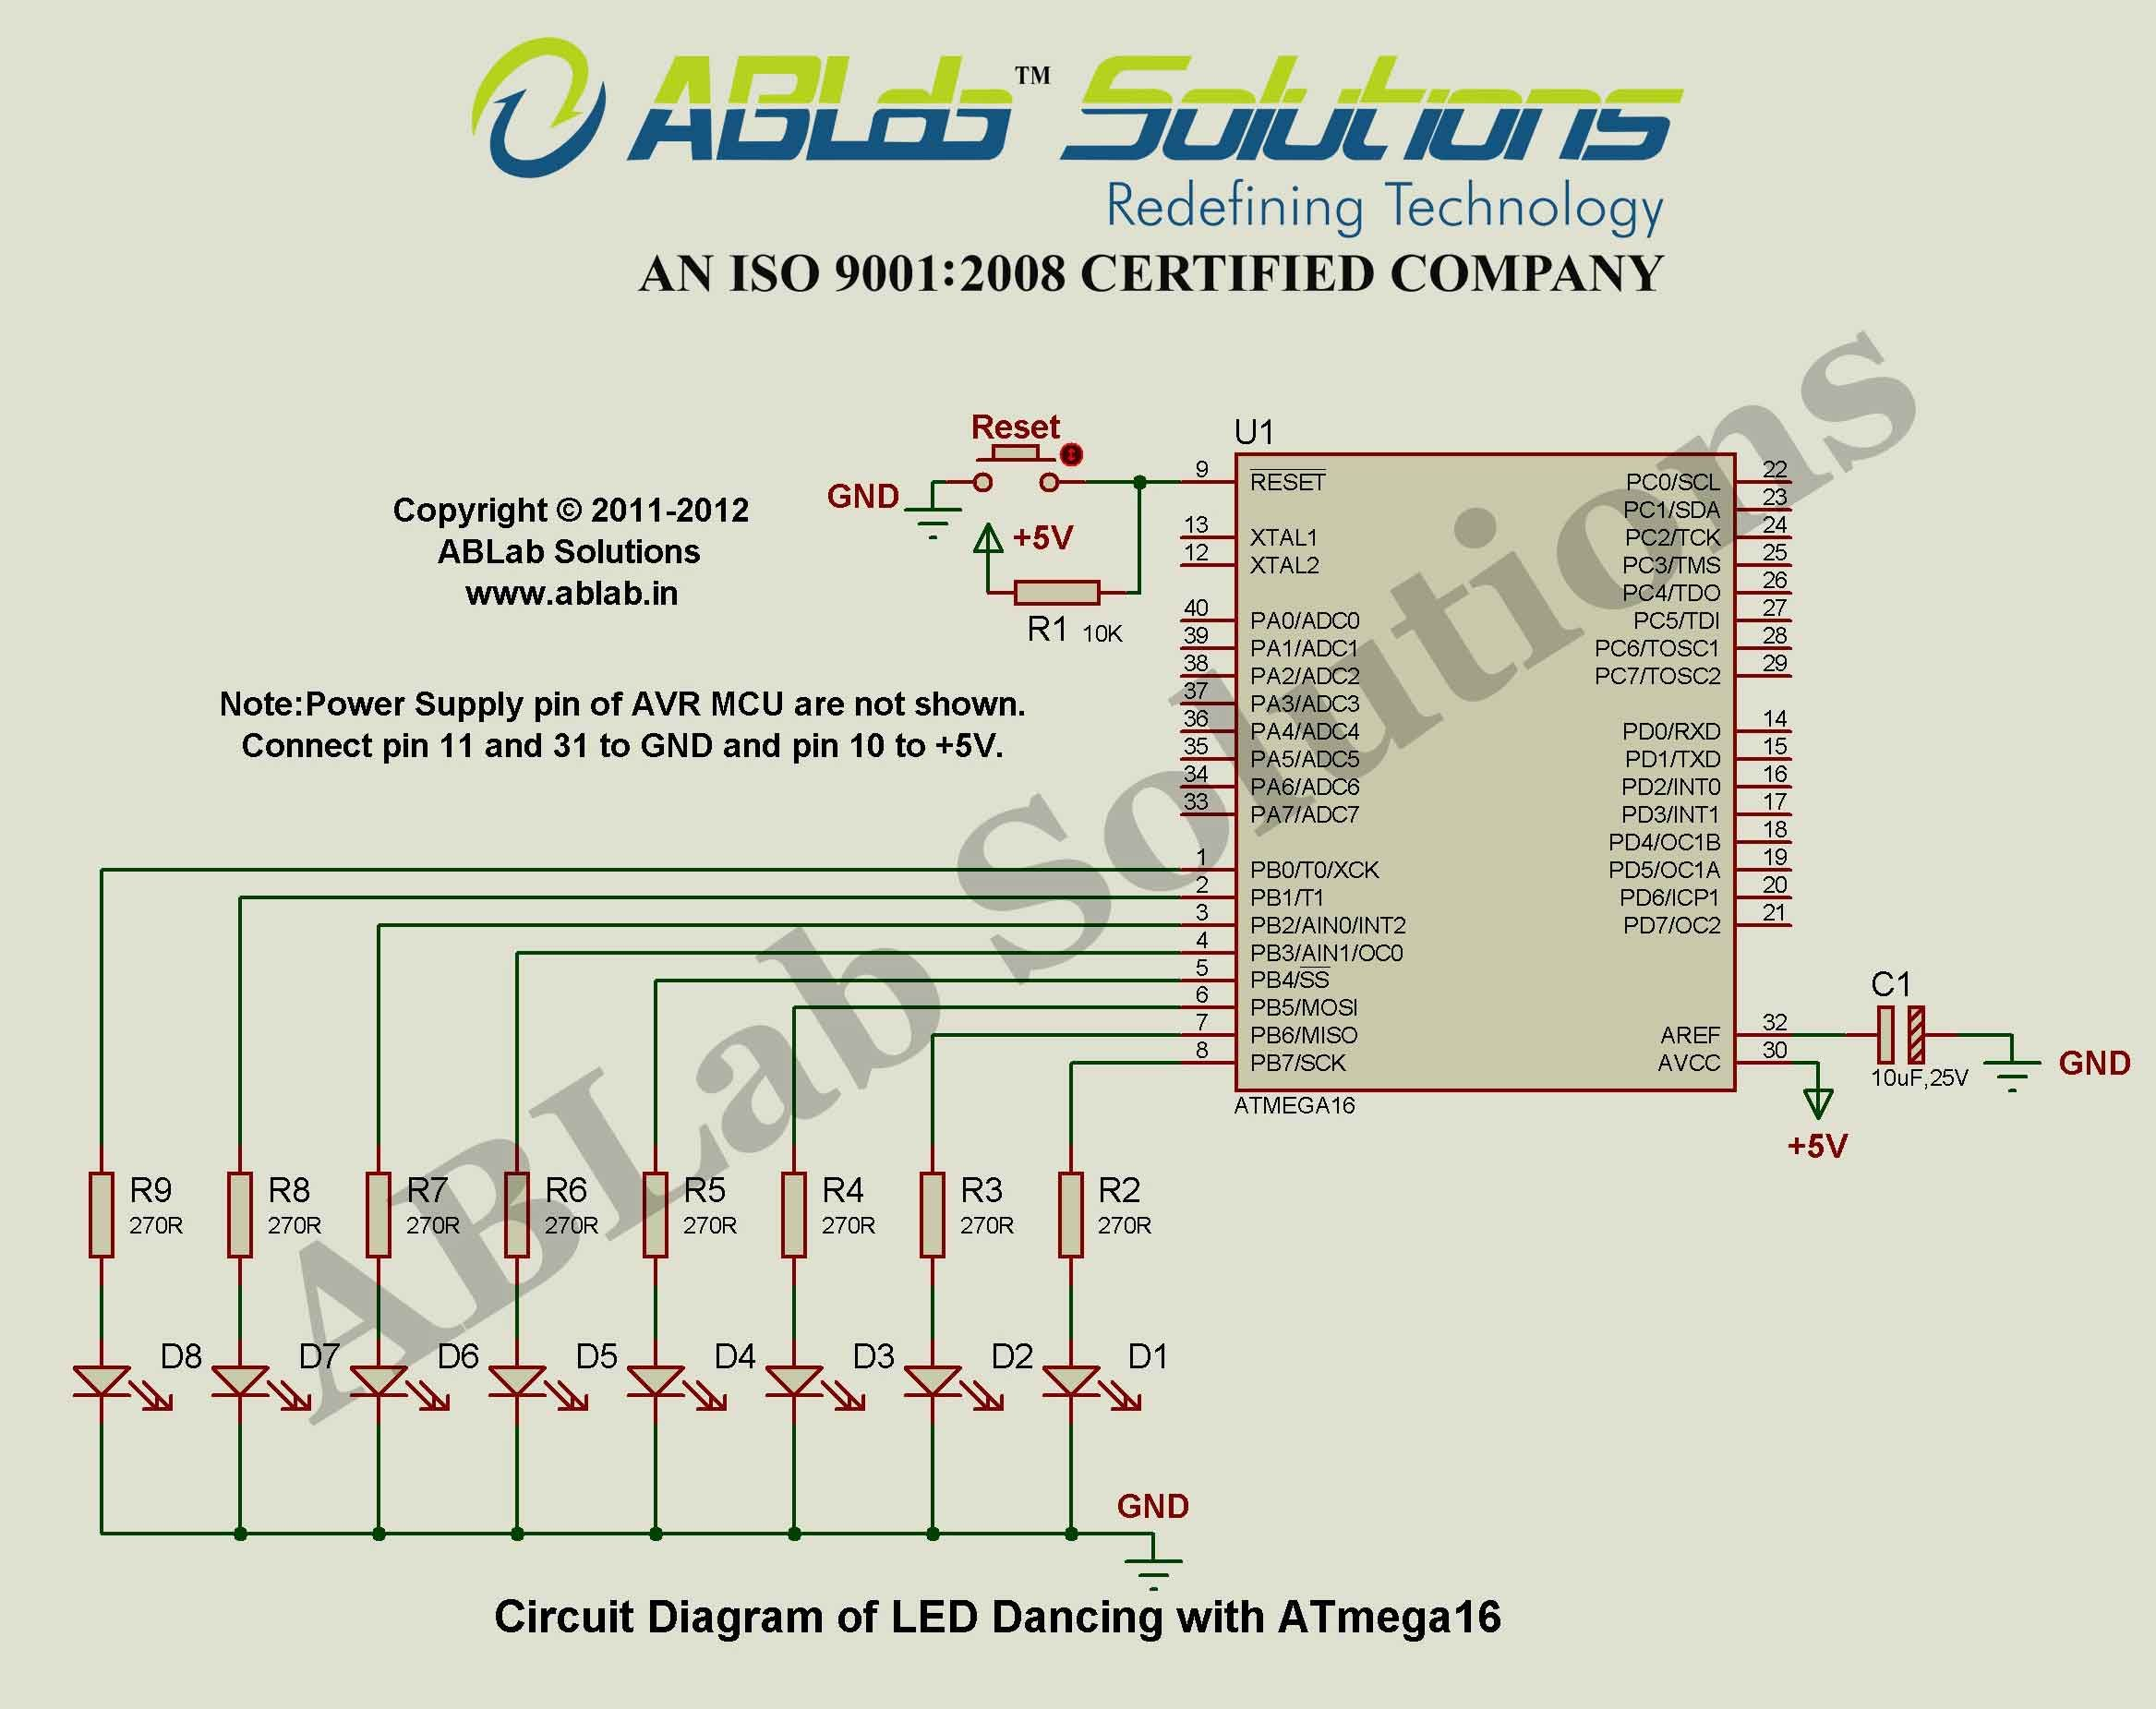 hight resolution of led dancing with avr atmega16 microcontroller circuit diagram ablab solutions